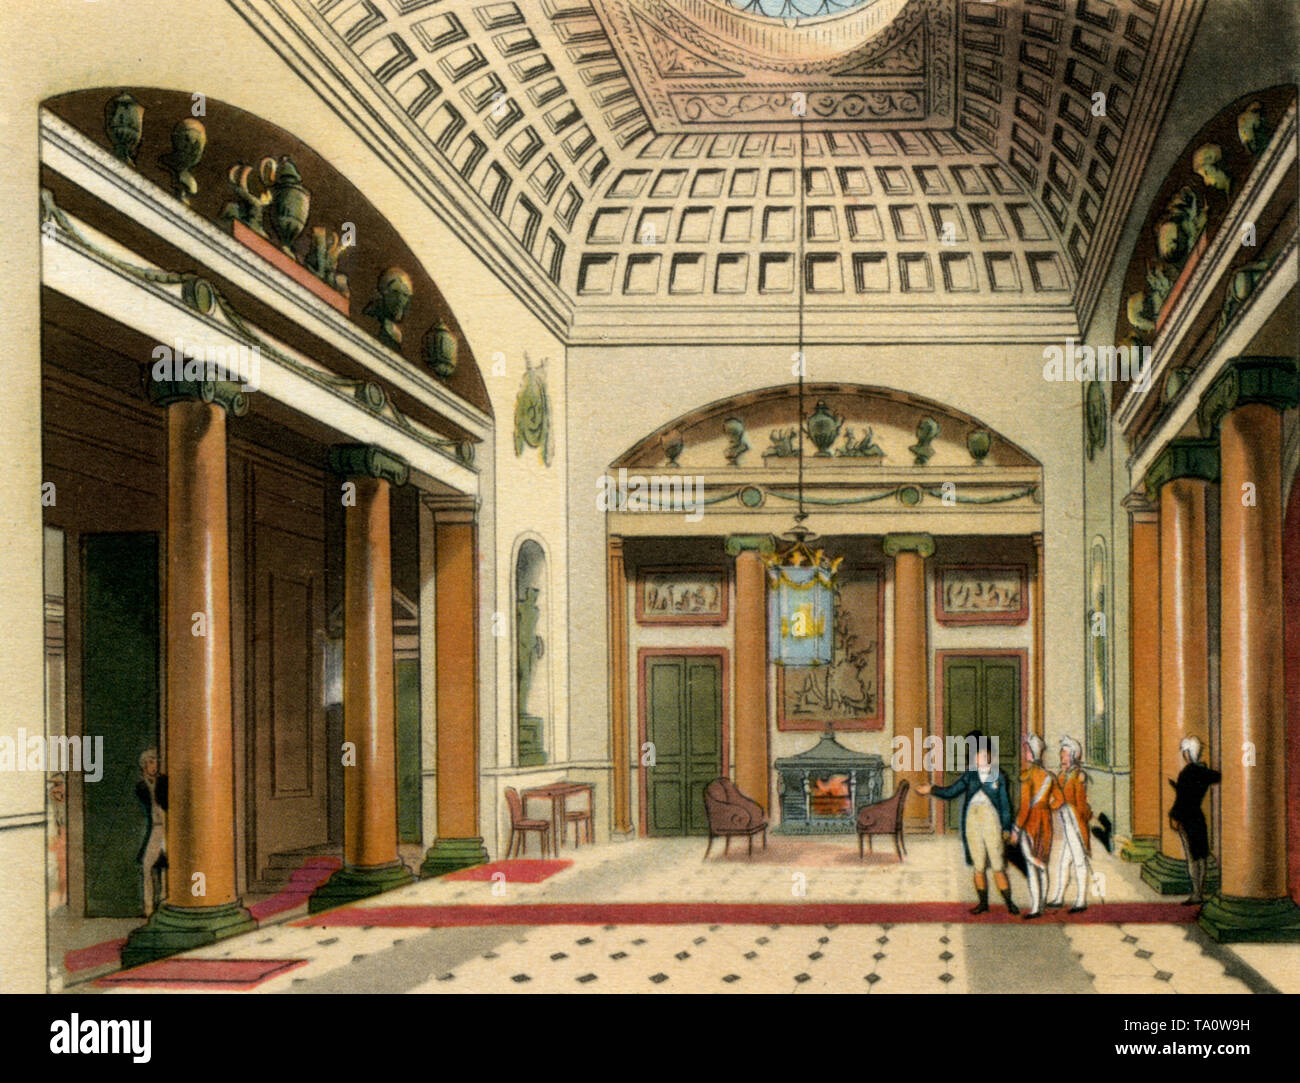 The Entrance Hall, Carlton House, c1808-1810. A print from 'The Microcosm of London', by William Henry Pyne (1770-1843). Artists: Thomas Rowlandson (1756-1827) and Auguste Charles Pugin (1762–1832). Carlton House is best known as the town residence of the Prince Regent later King George IV (1762–1830). Its principal architect was Henry Holland (1745–1806). - Stock Image